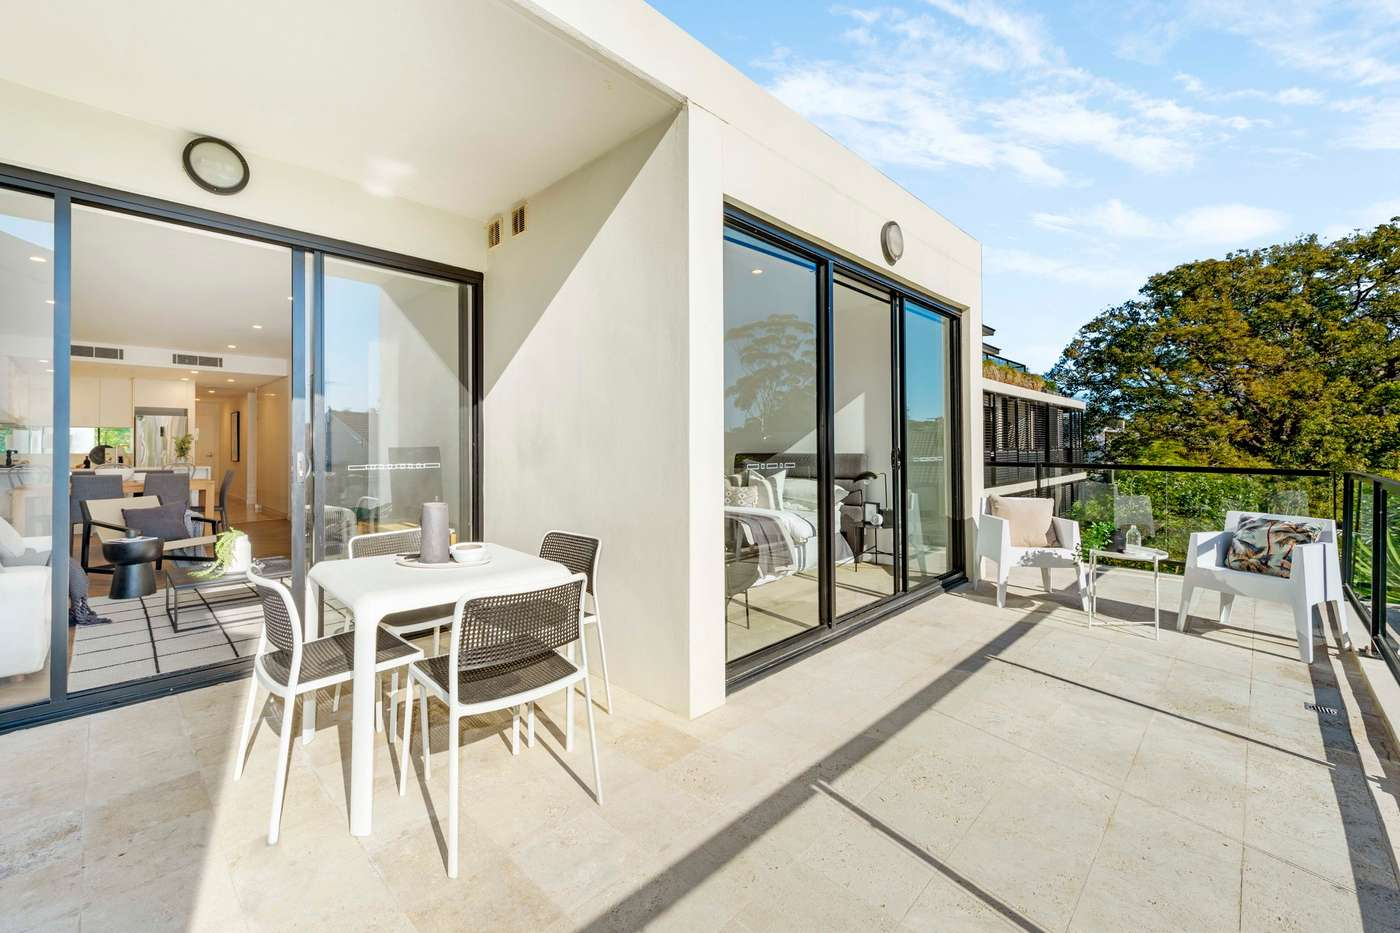 Main view of Homely apartment listing, 201/64 Gladesville Road, Hunters Hill, NSW 2110